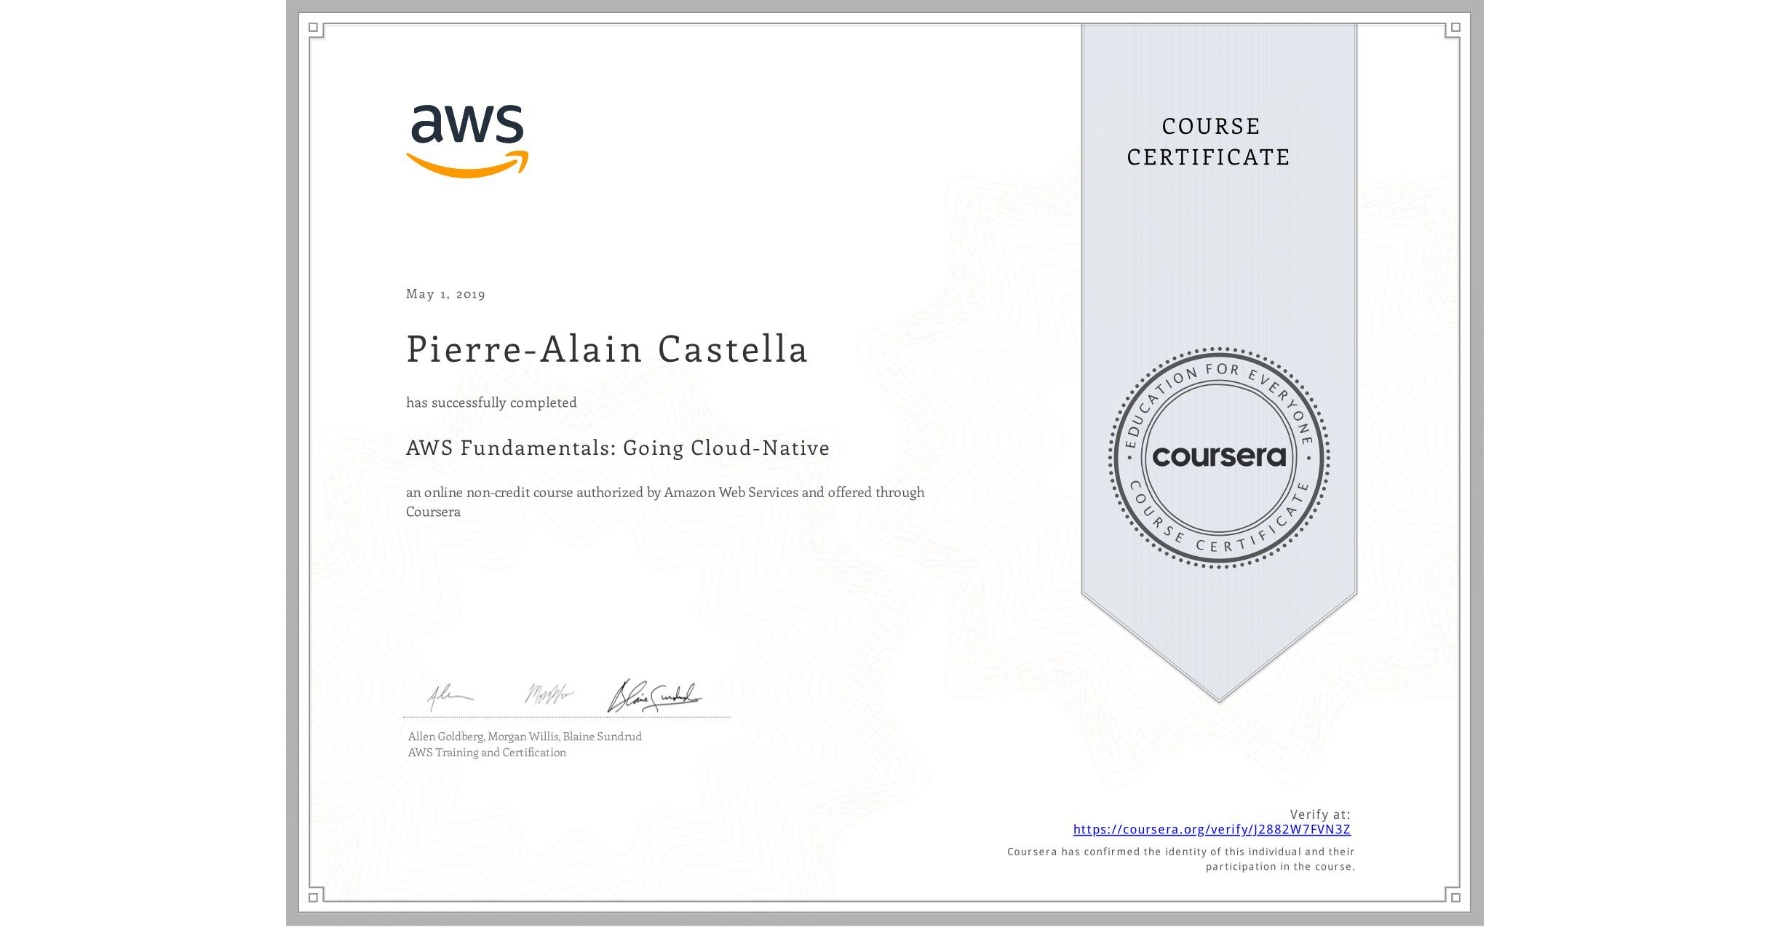 View certificate for Pierre-Alain Castella, AWS Fundamentals: Going Cloud-Native, an online non-credit course authorized by Amazon Web Services and offered through Coursera